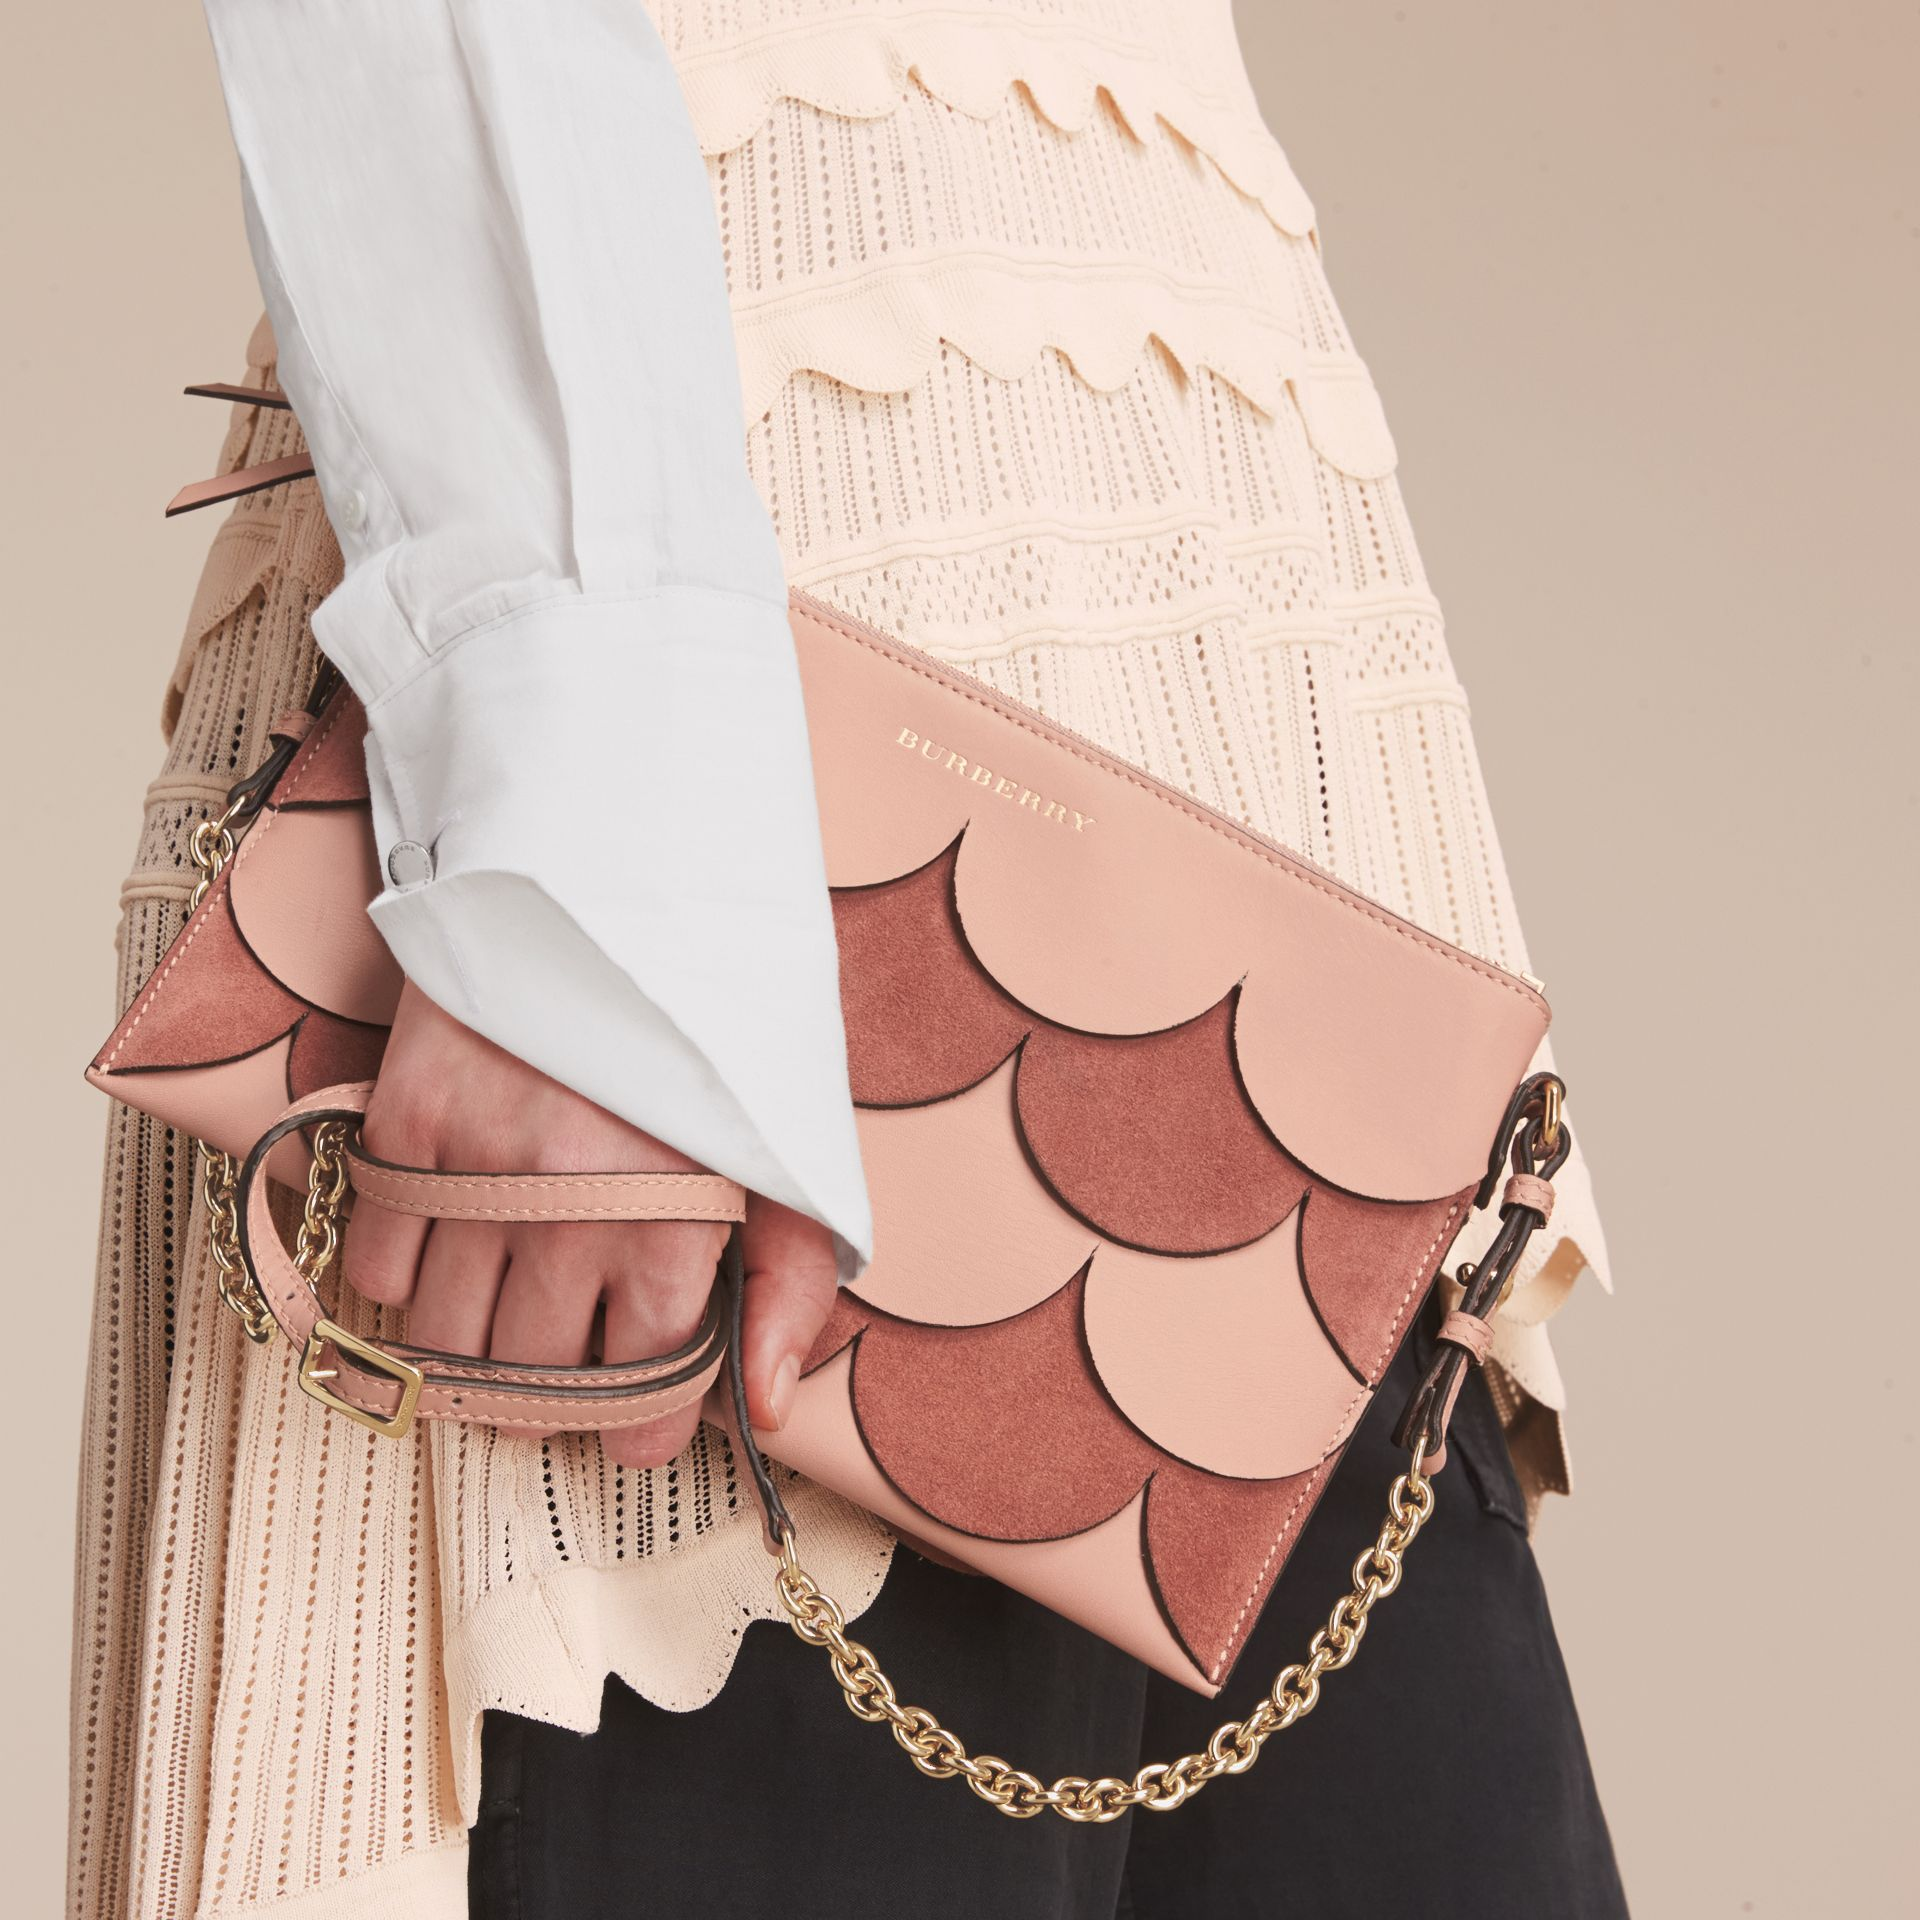 Two-tone Scalloped Leather and Suede Clutch Bag in Ash Rose - Women | Burberry Singapore - gallery image 3